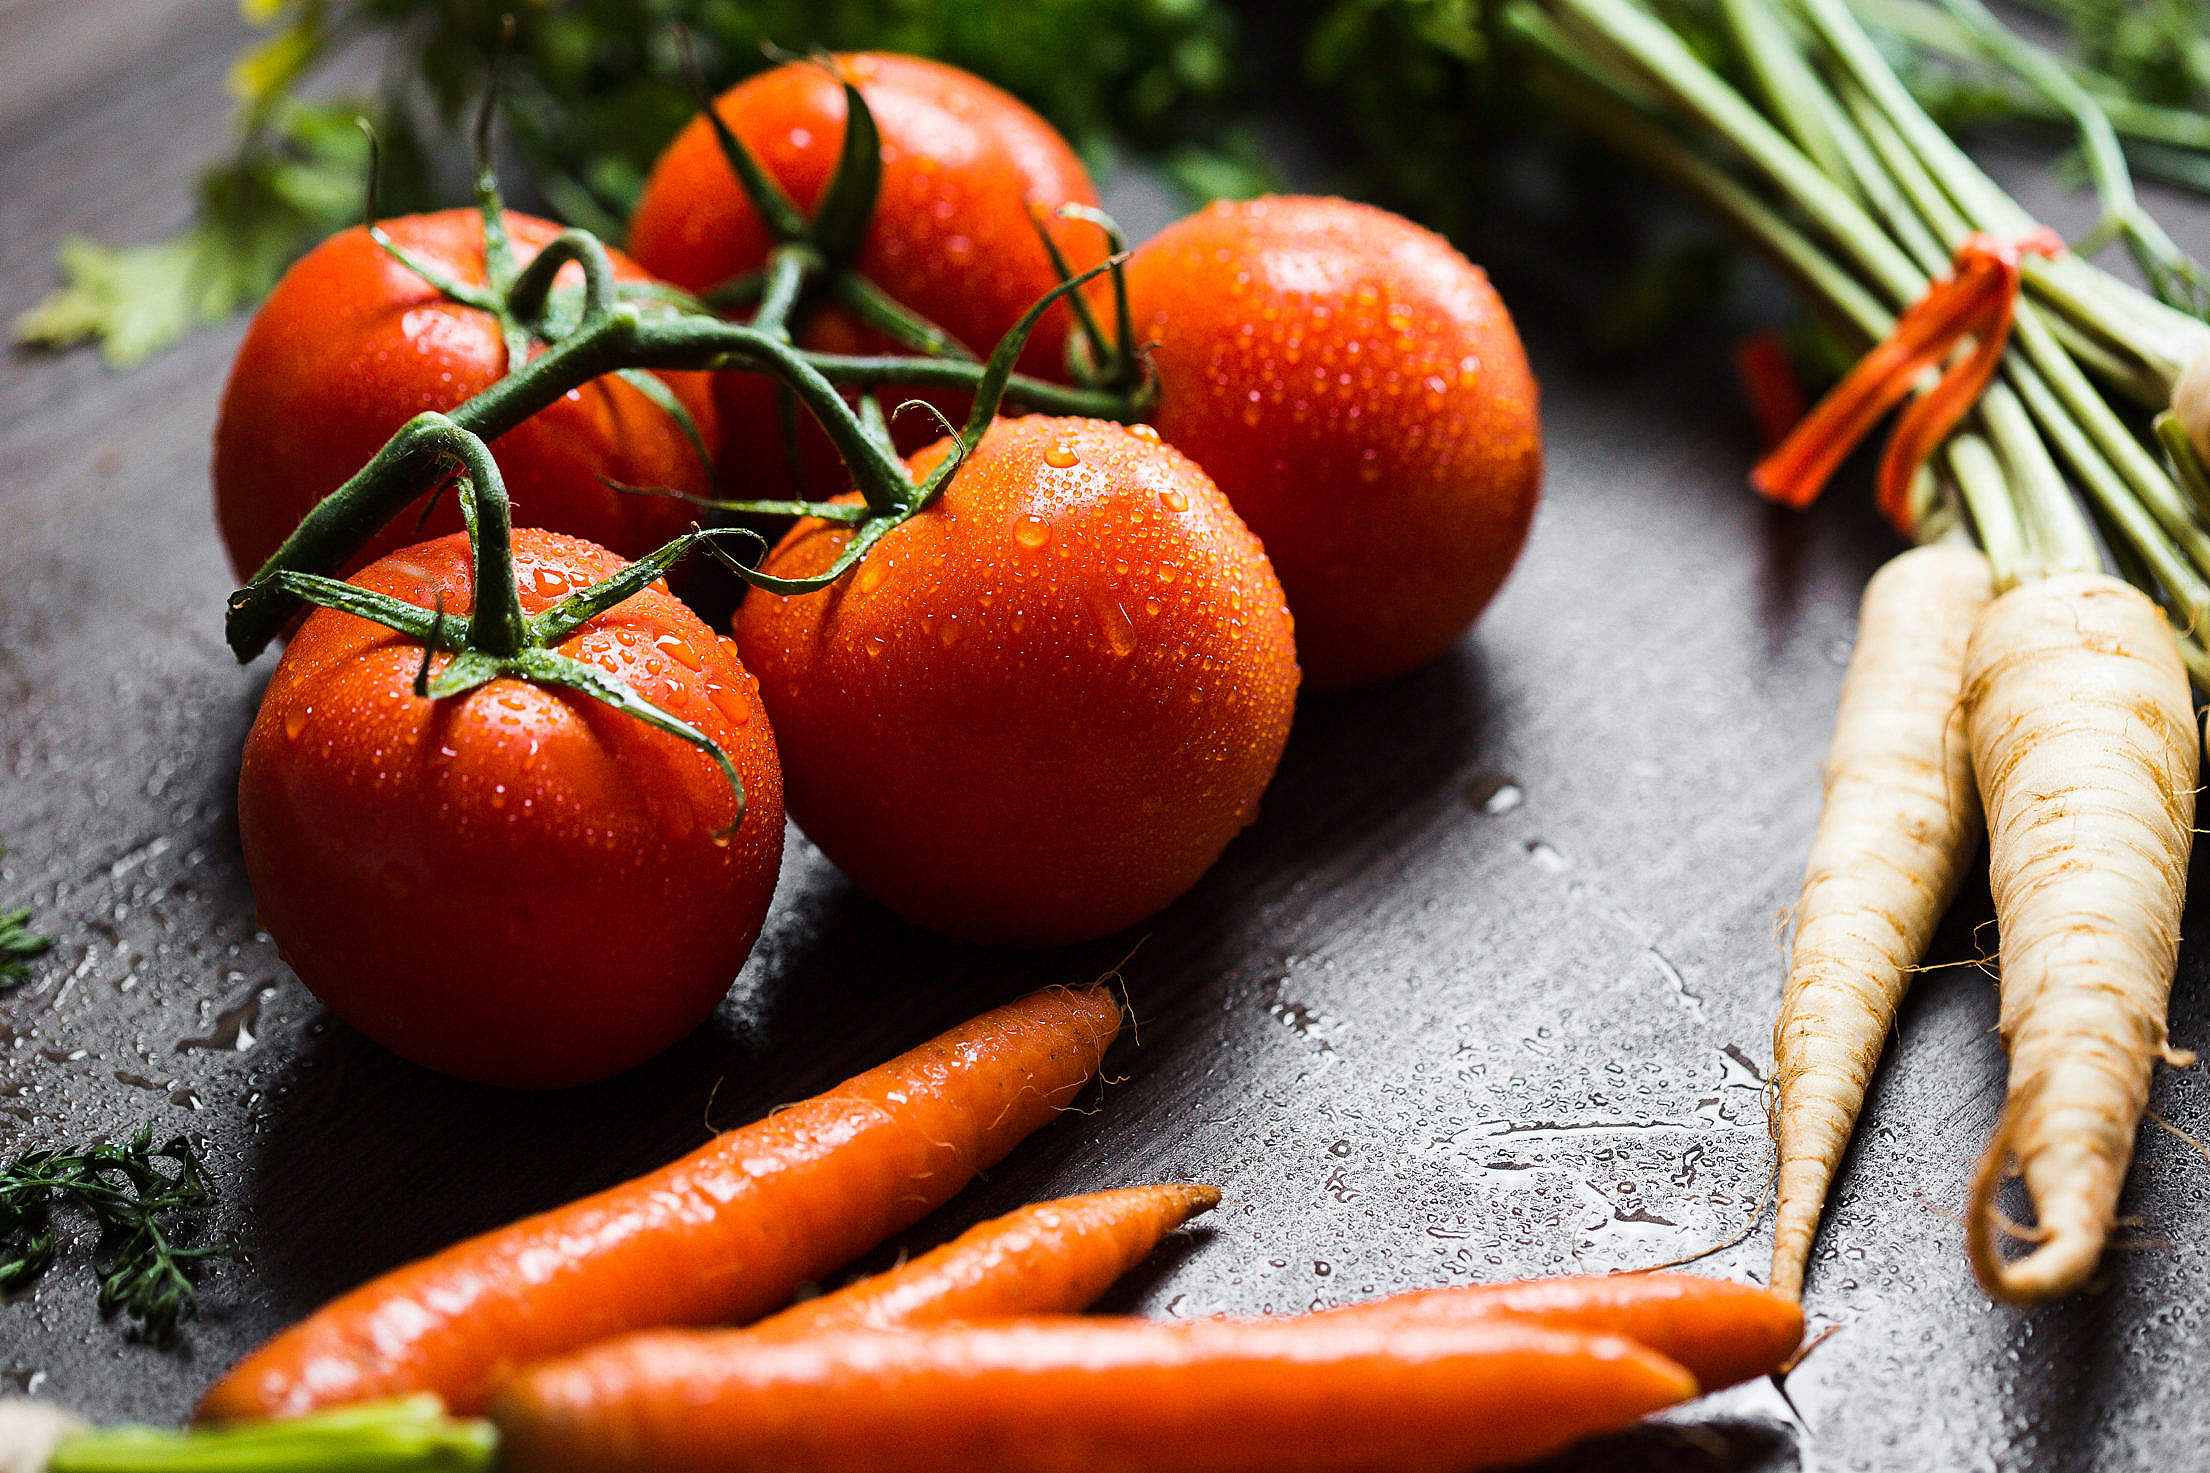 Wet Tomatoes, Carrots and Parsley Ready to Cooking Free Stock Photo